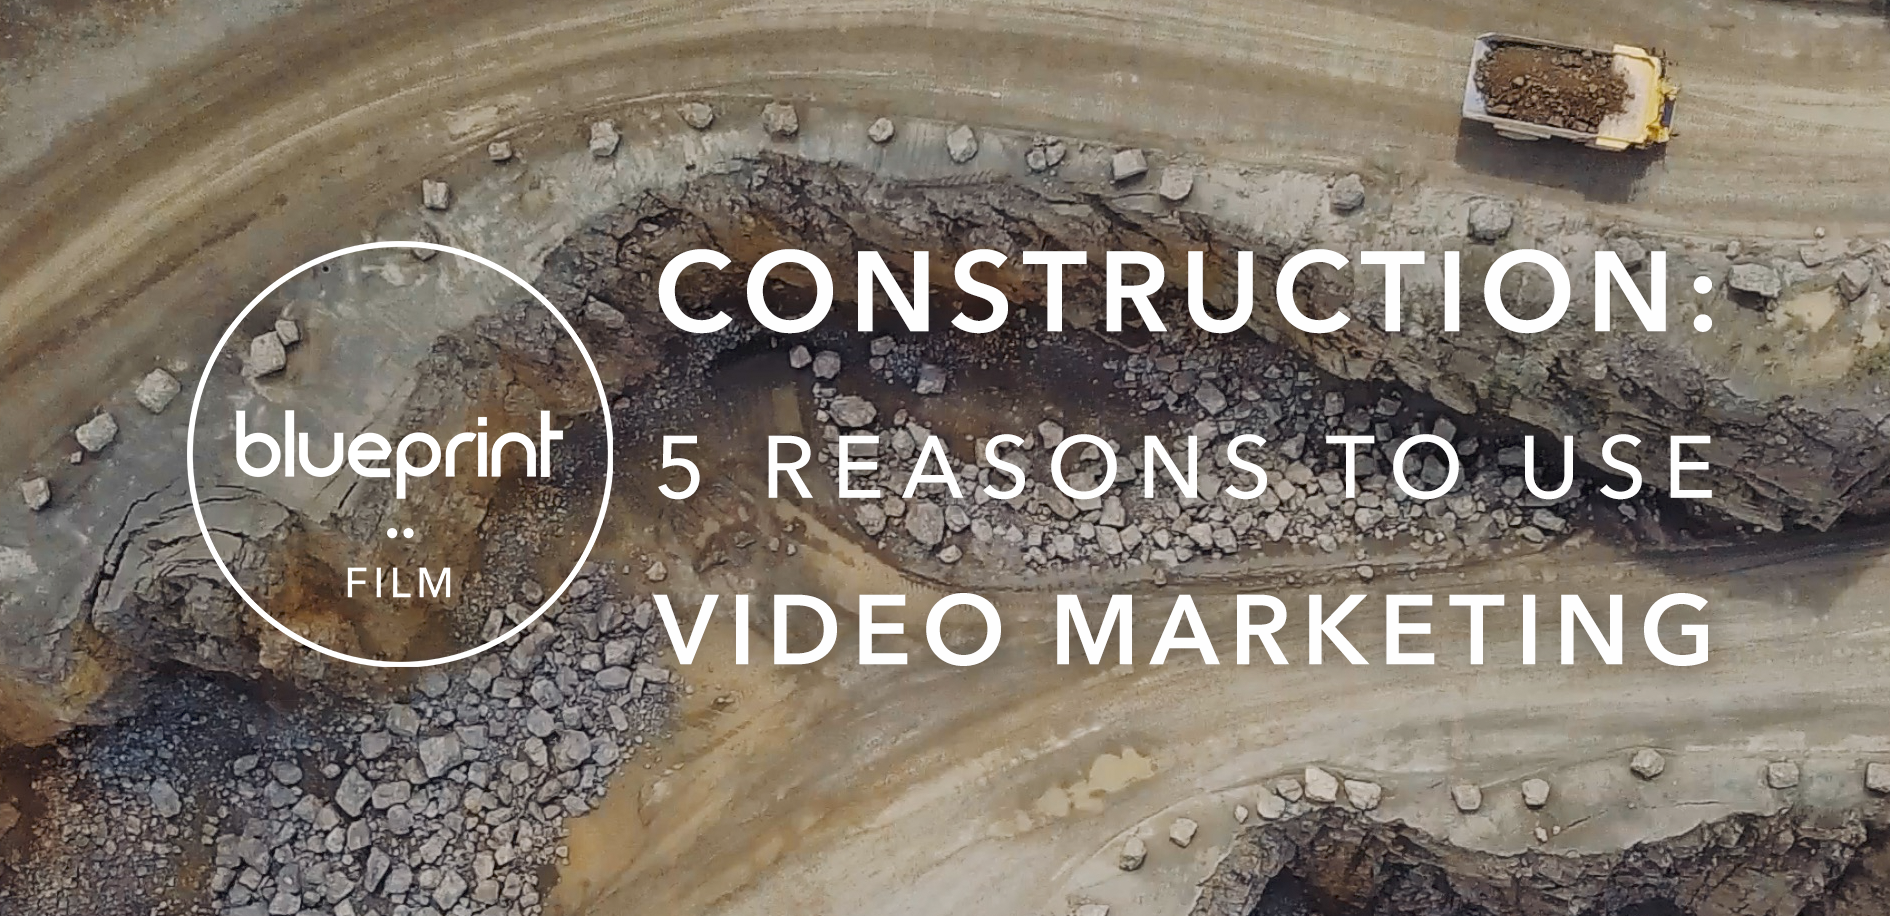 Construction 5 Reasons To Use Video Marketing